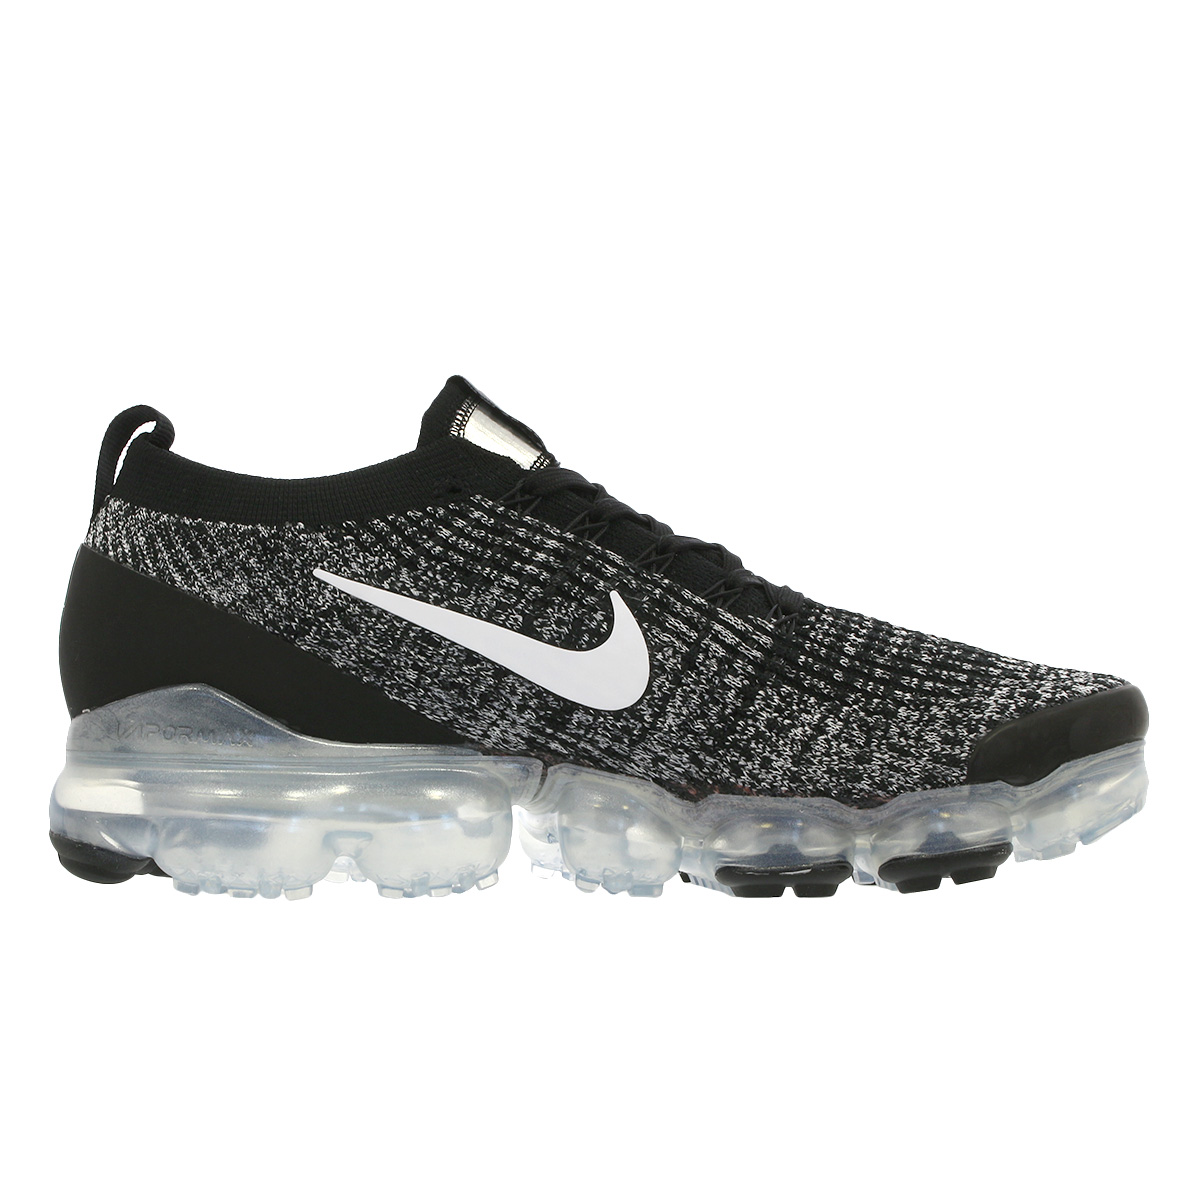 super popular 4a5b6 d8fef NIKE AIR VAPORMAX FLYKNIT 3 Nike vapor max fried food knit 3  BLACK/WHITE/METALLIC SILVER aj6900-002